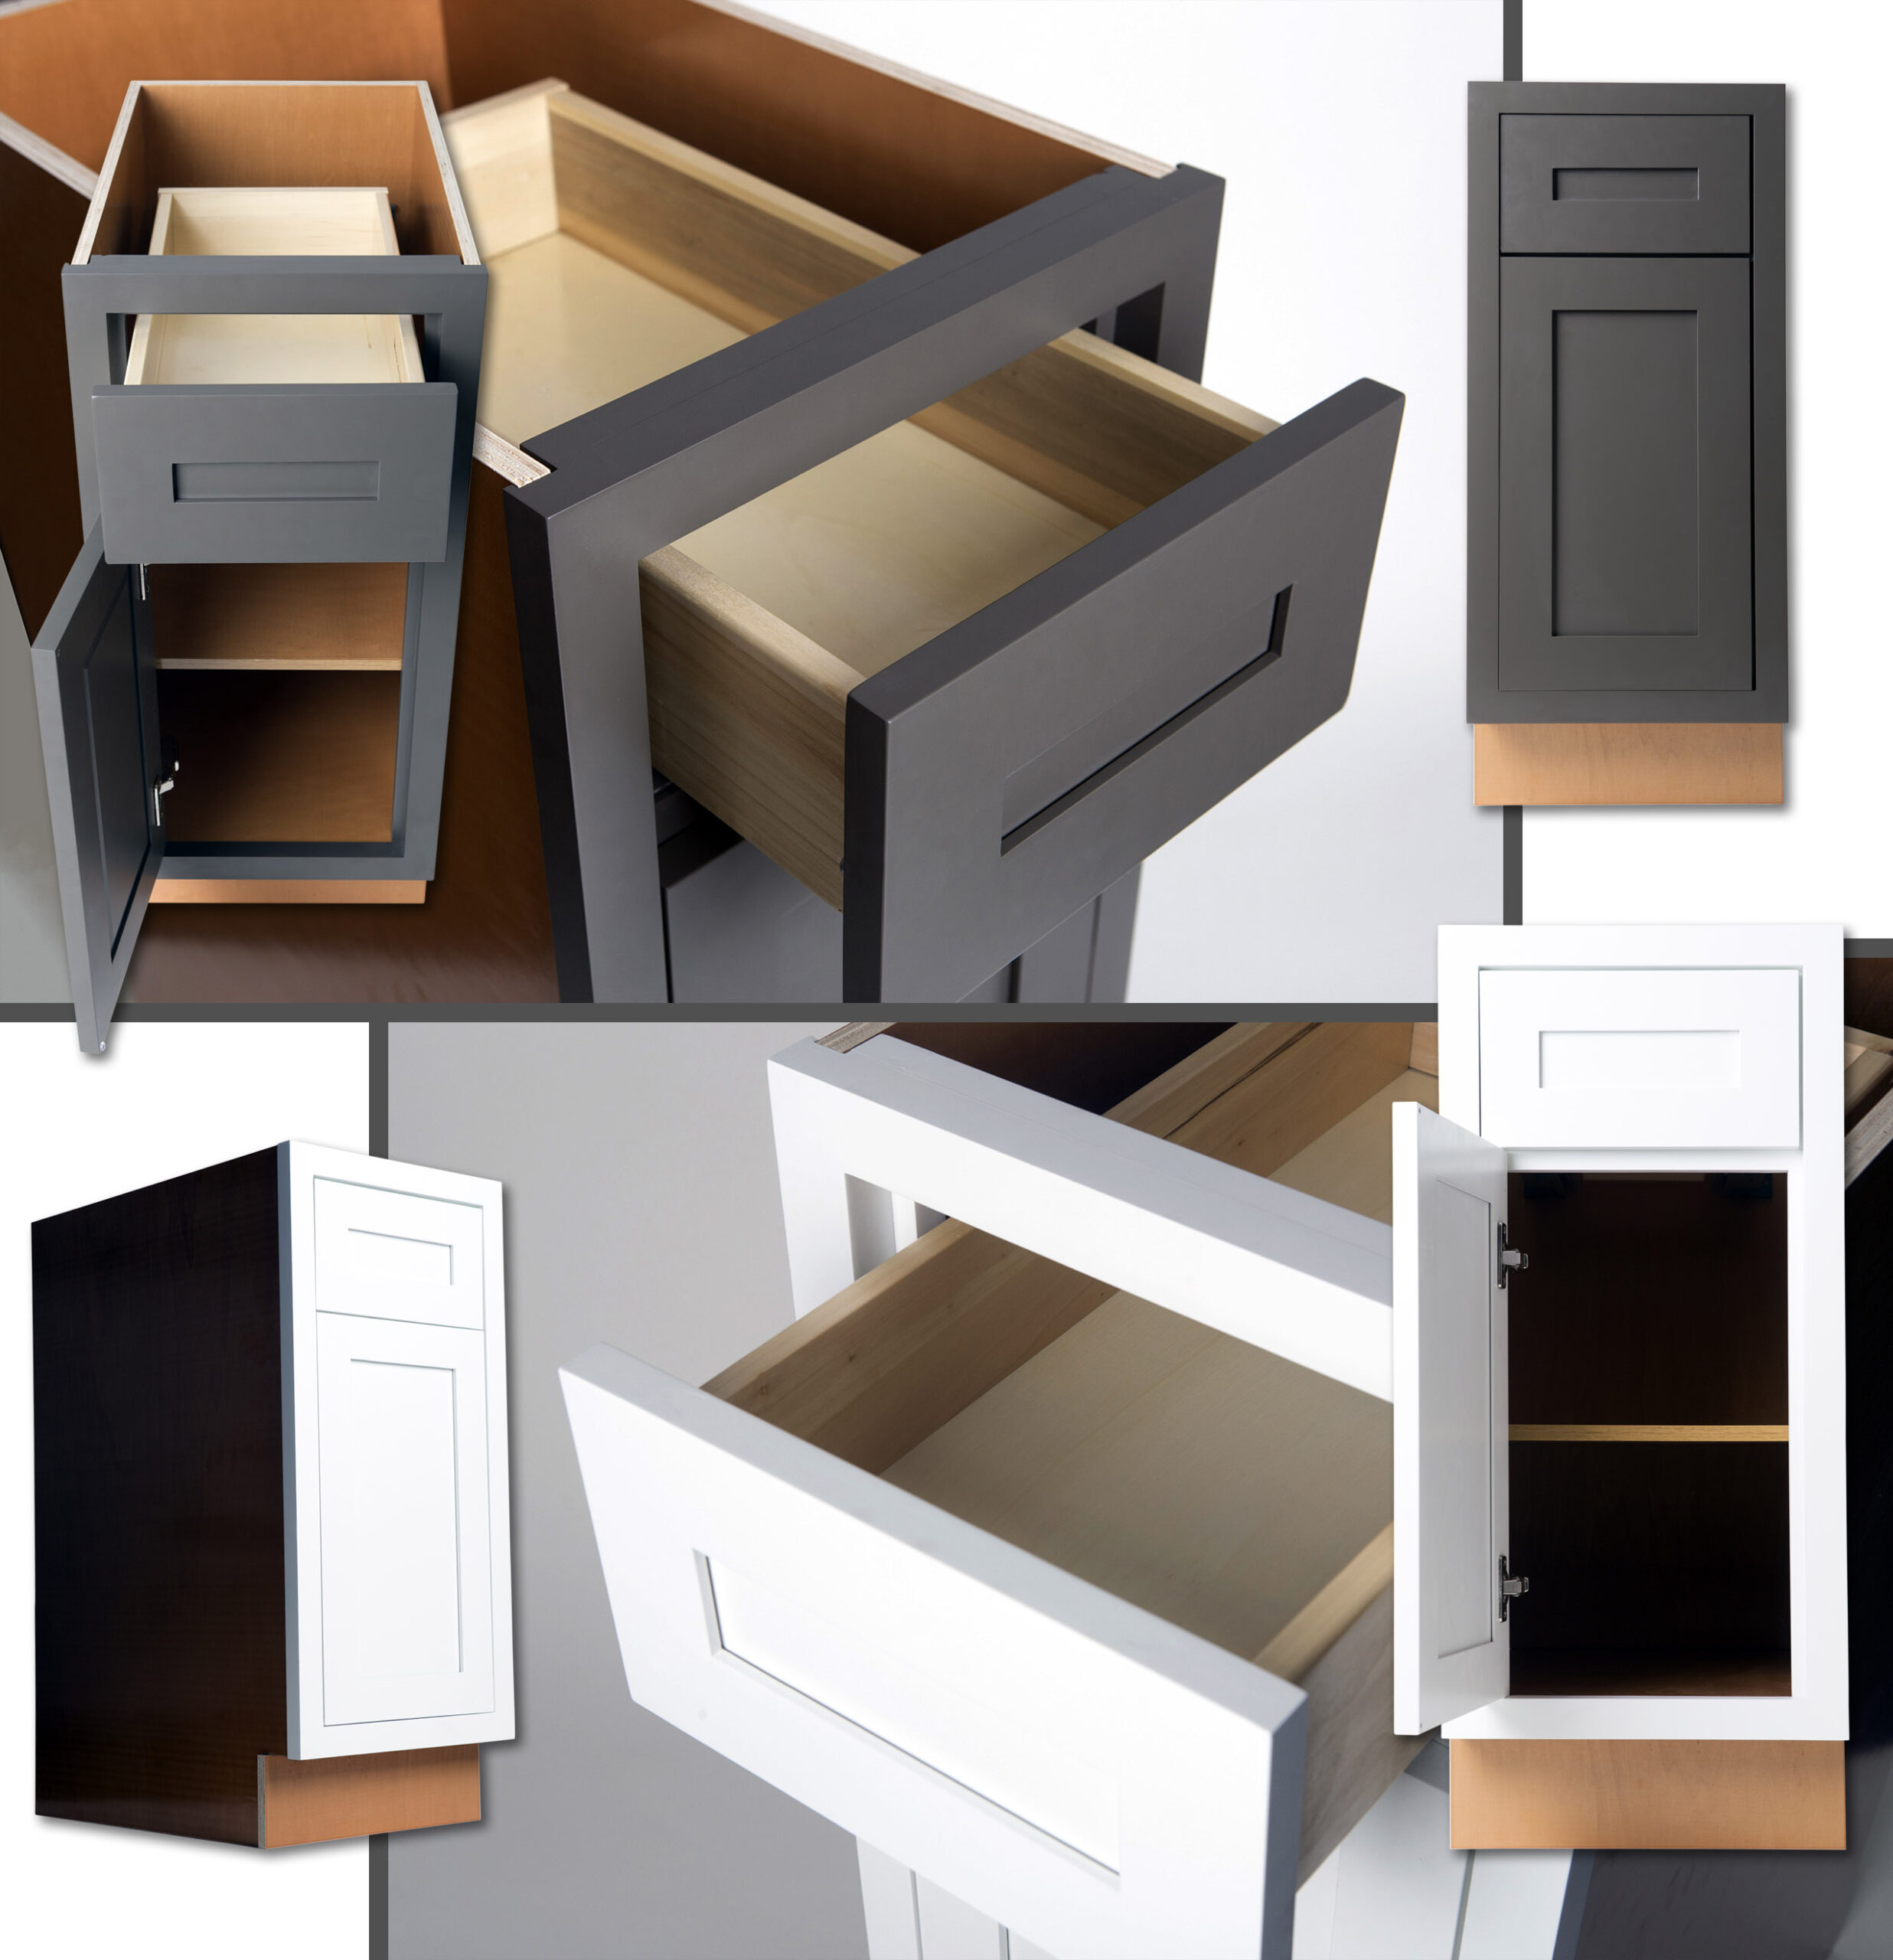 cabinets layout